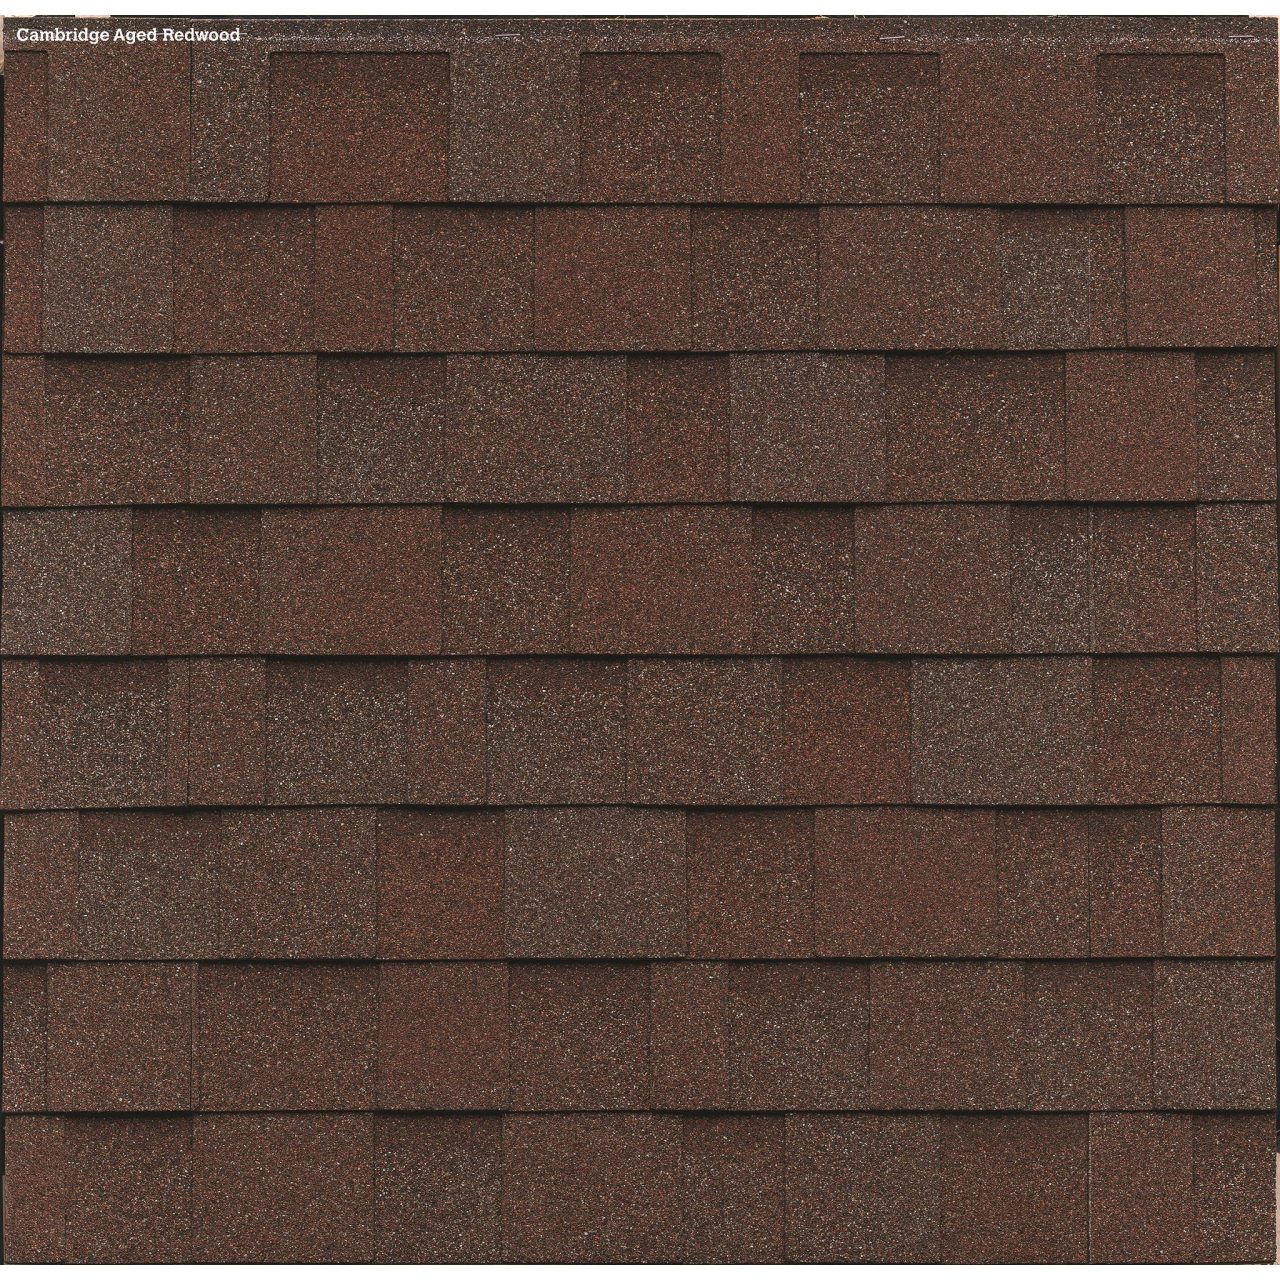 Biltmore Aged Redwood Eurotech Roofing Supply